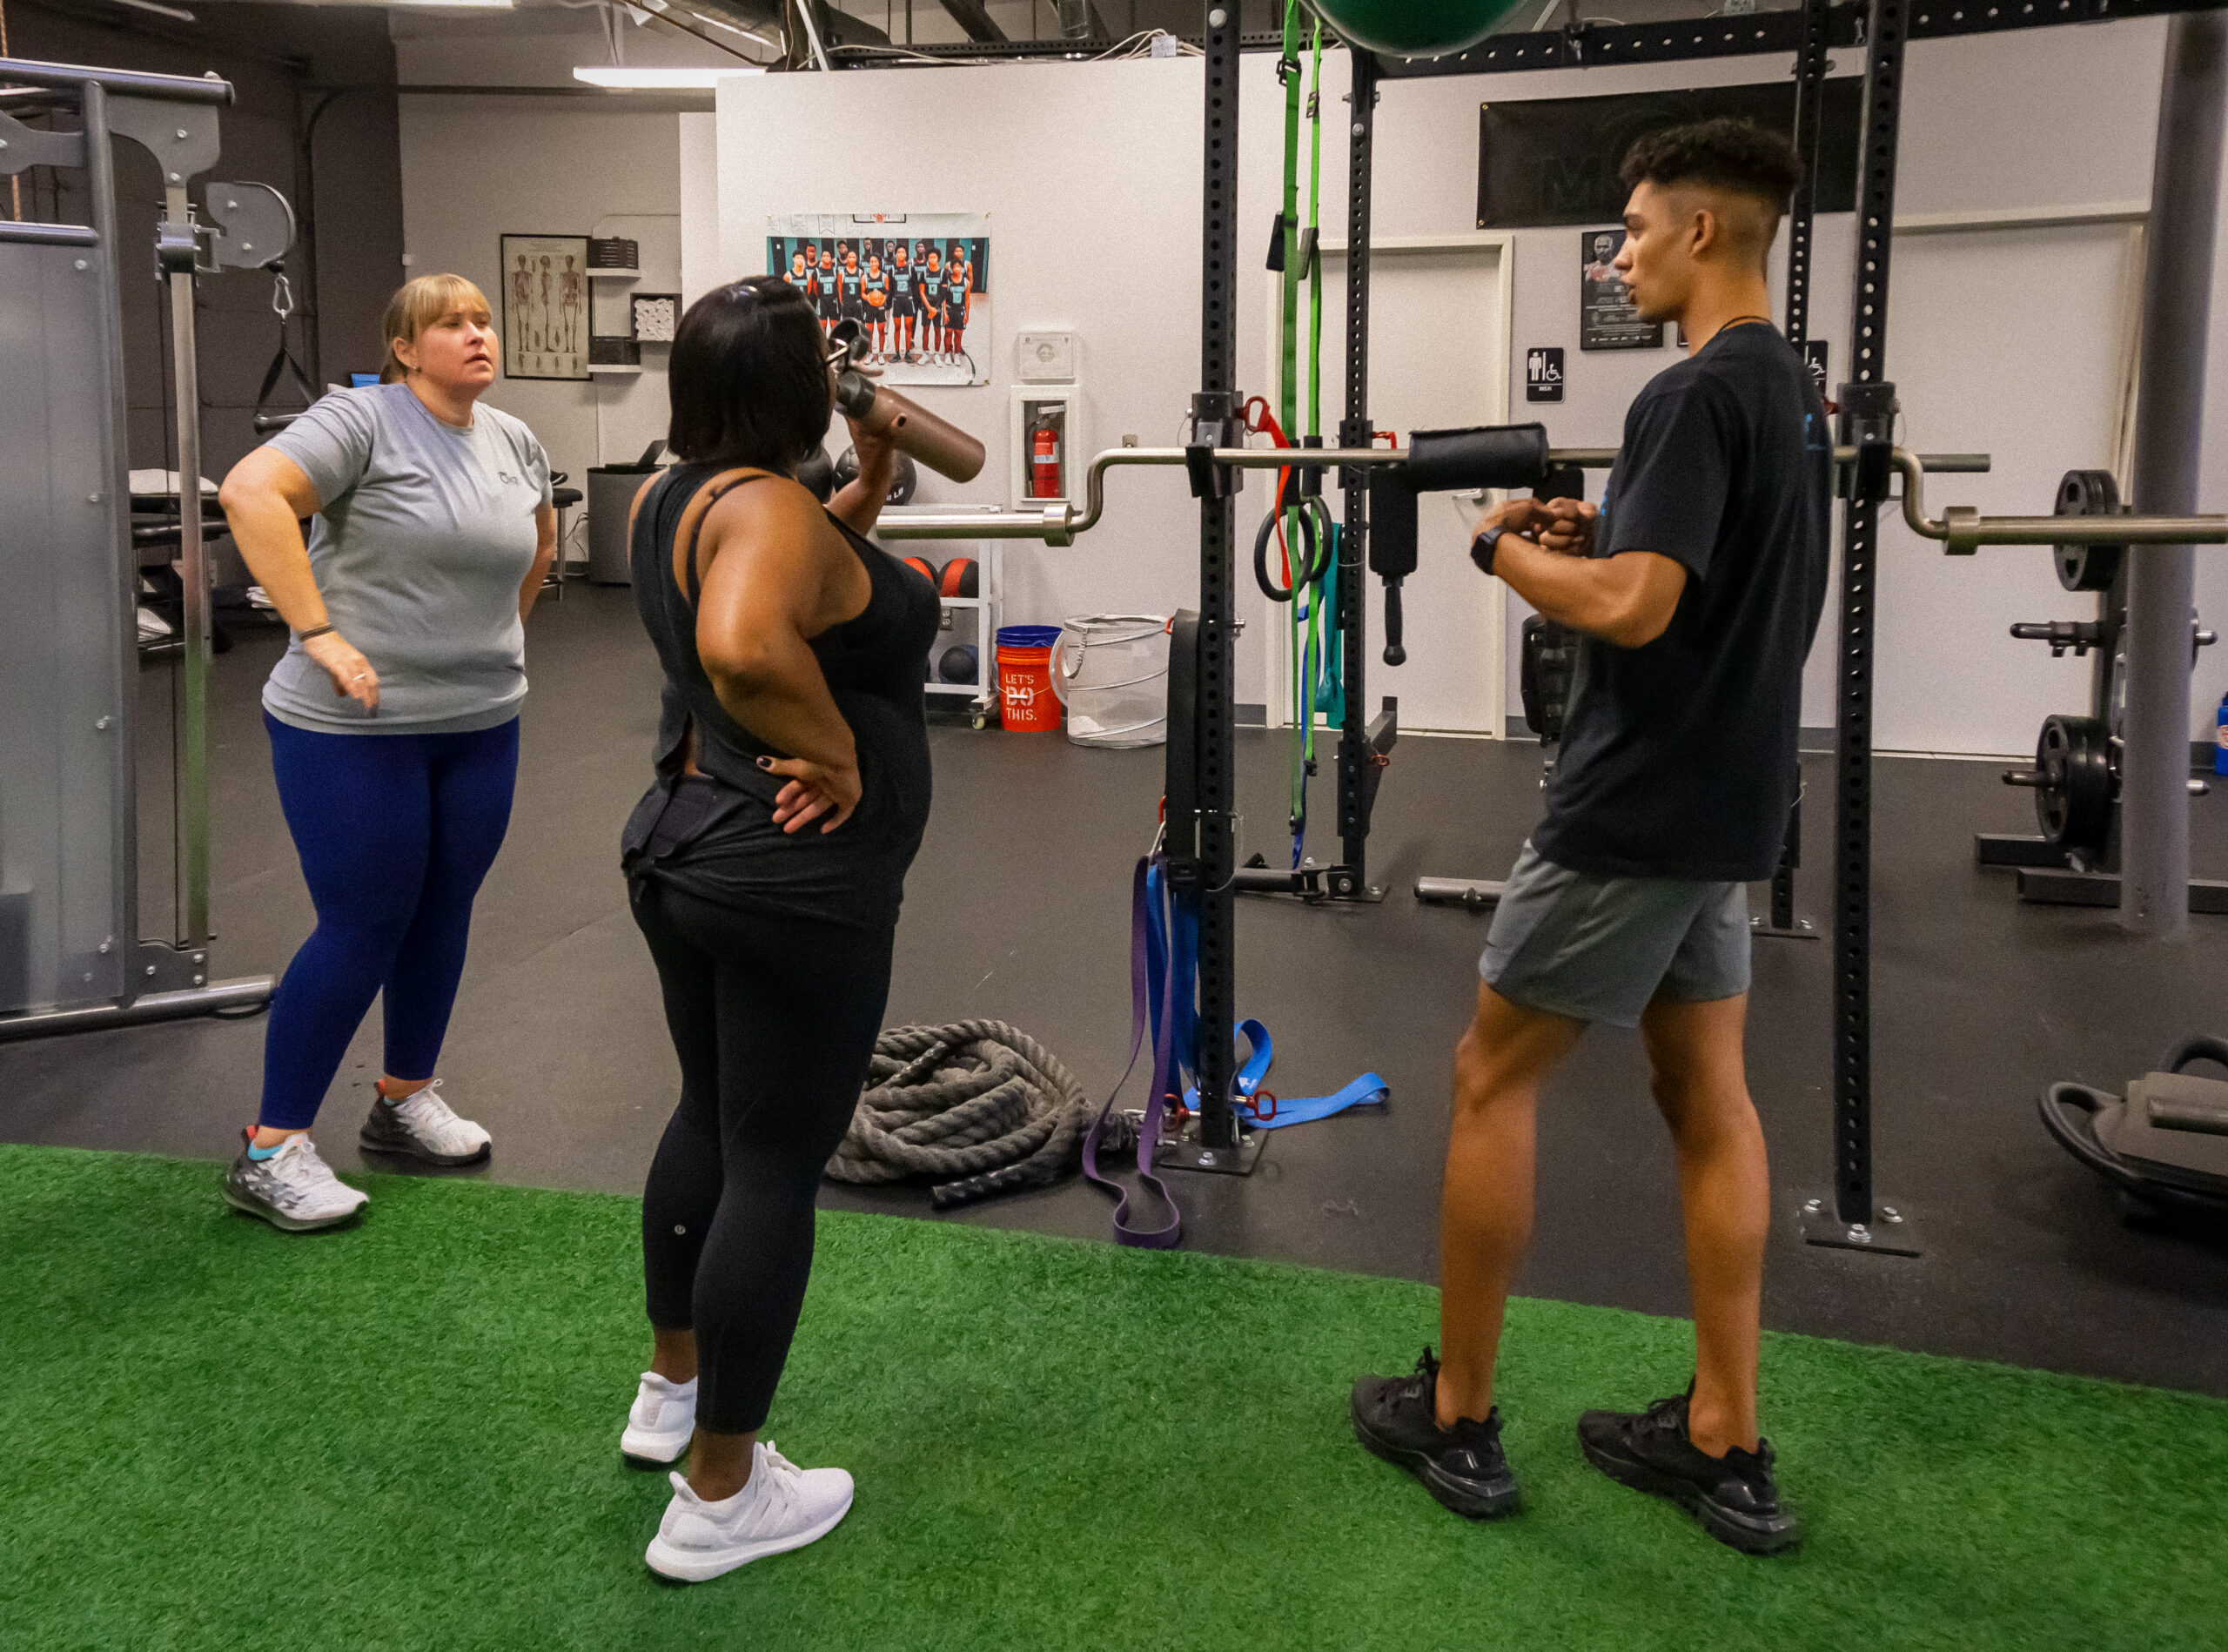 personal training at move performance center